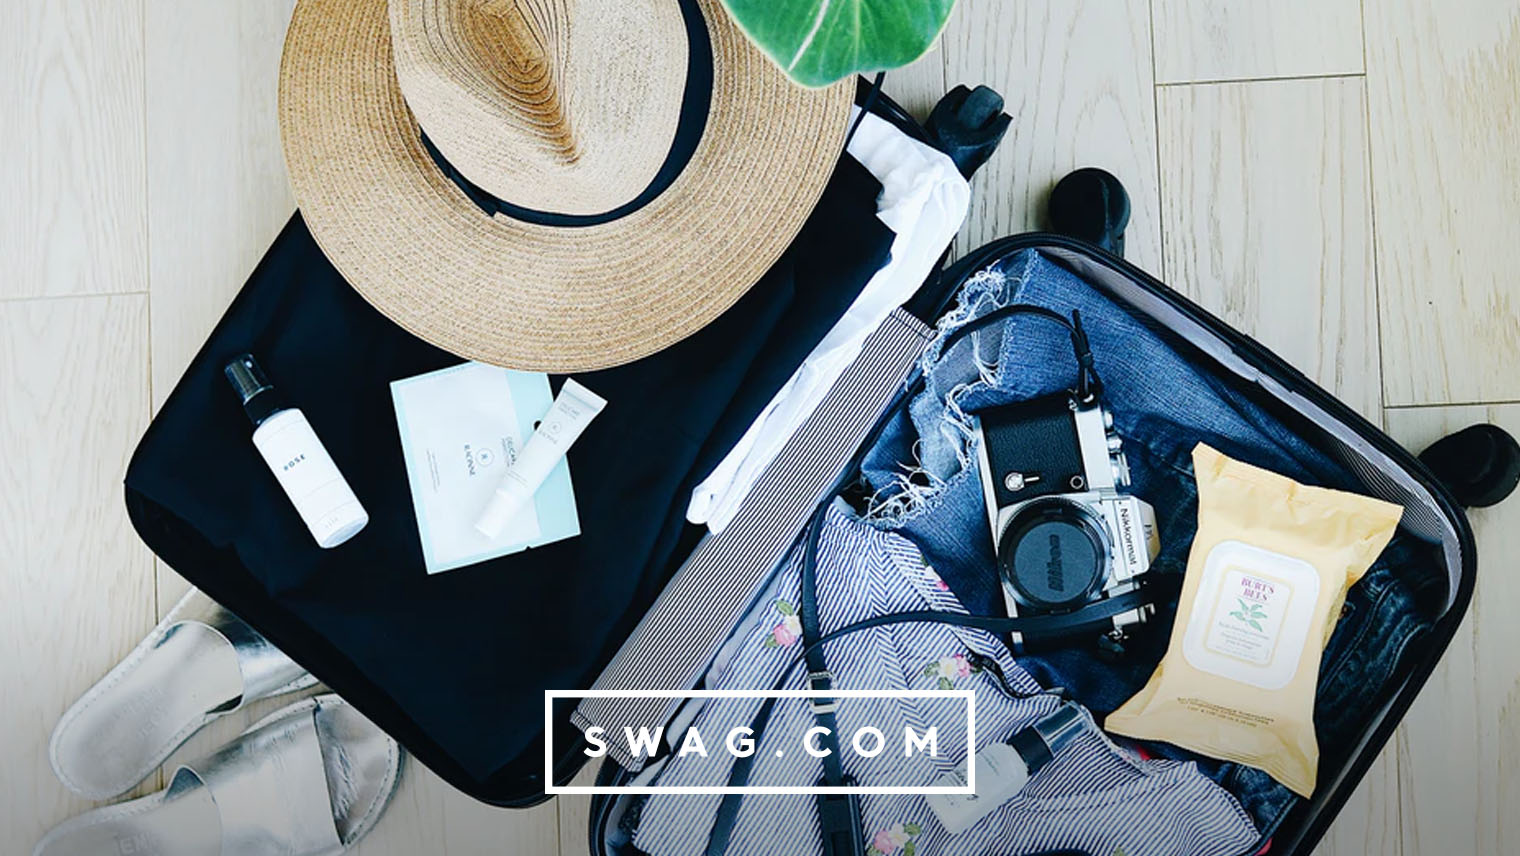 Travel Swag & Promotional Products for Travelers